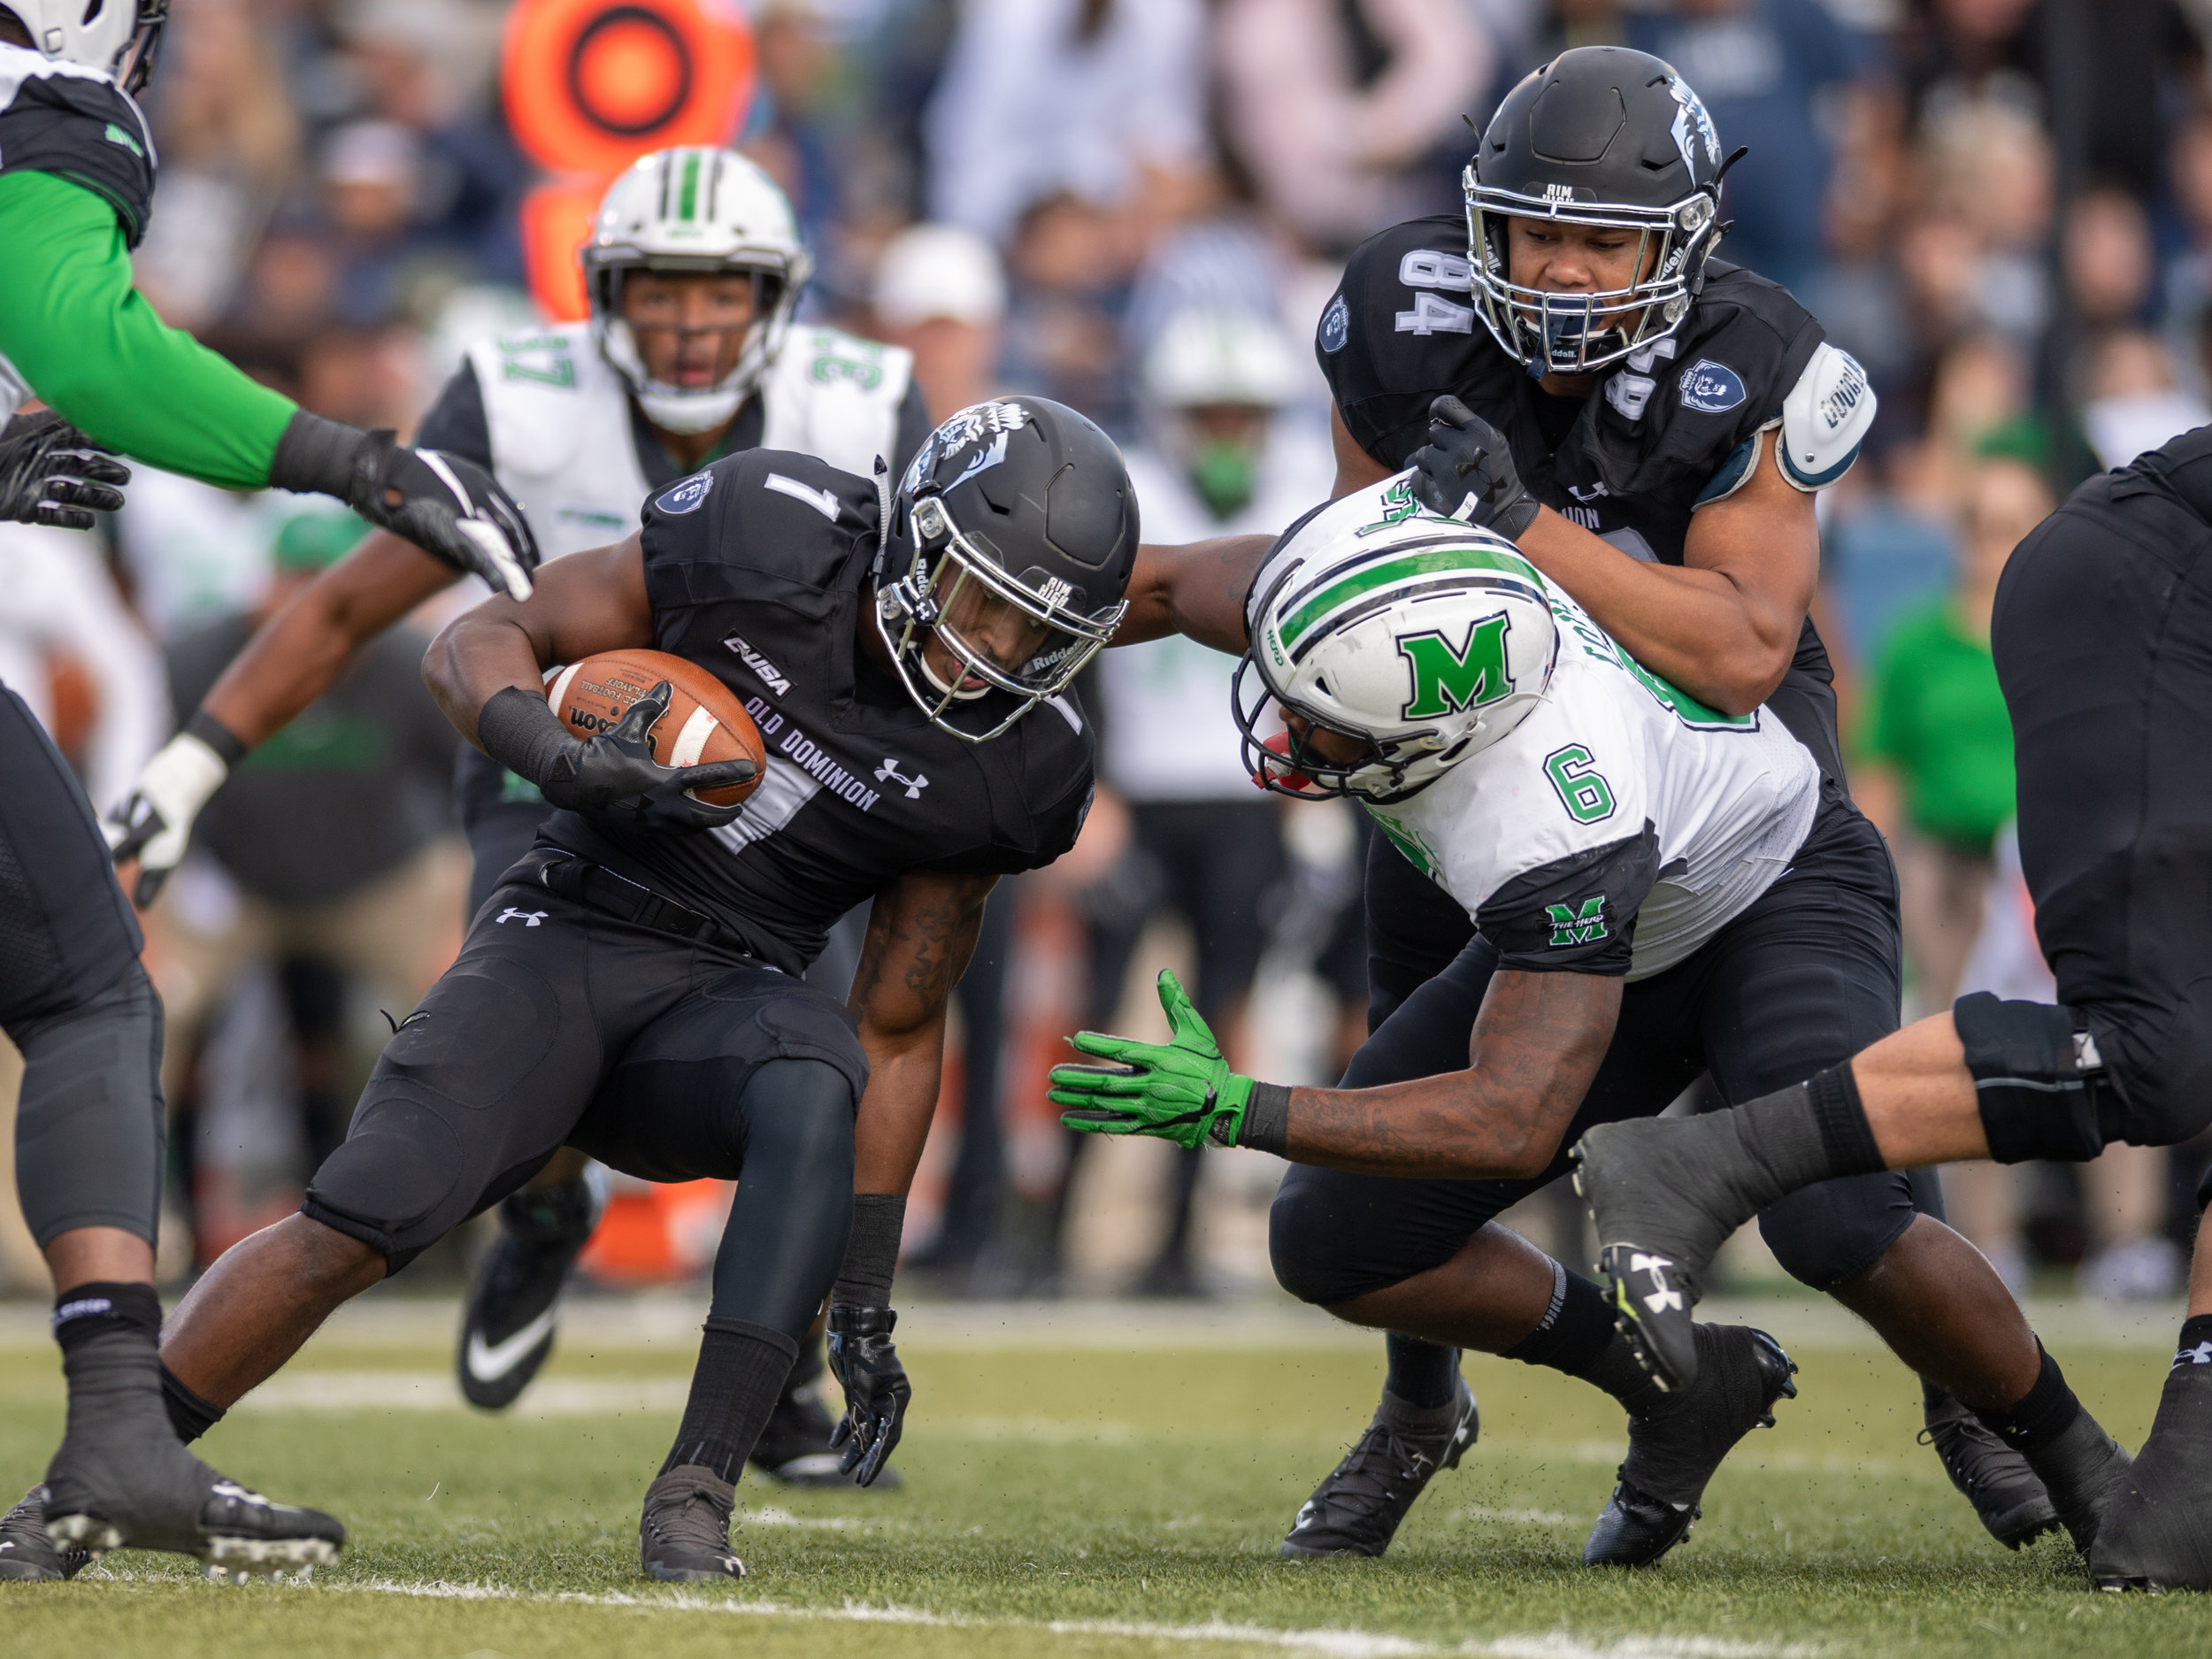 Marshall Thundering Herd defensive lineman Marquis Couch (6) works to tackle Old Dominion Monarchs running back Kesean Strong (1) during the Saturday, Oct. 13, 2018 game held at Old Dominion University in Norfolk, Virginia. Marshall leads Old Dominion 14 to 3 at halftime.